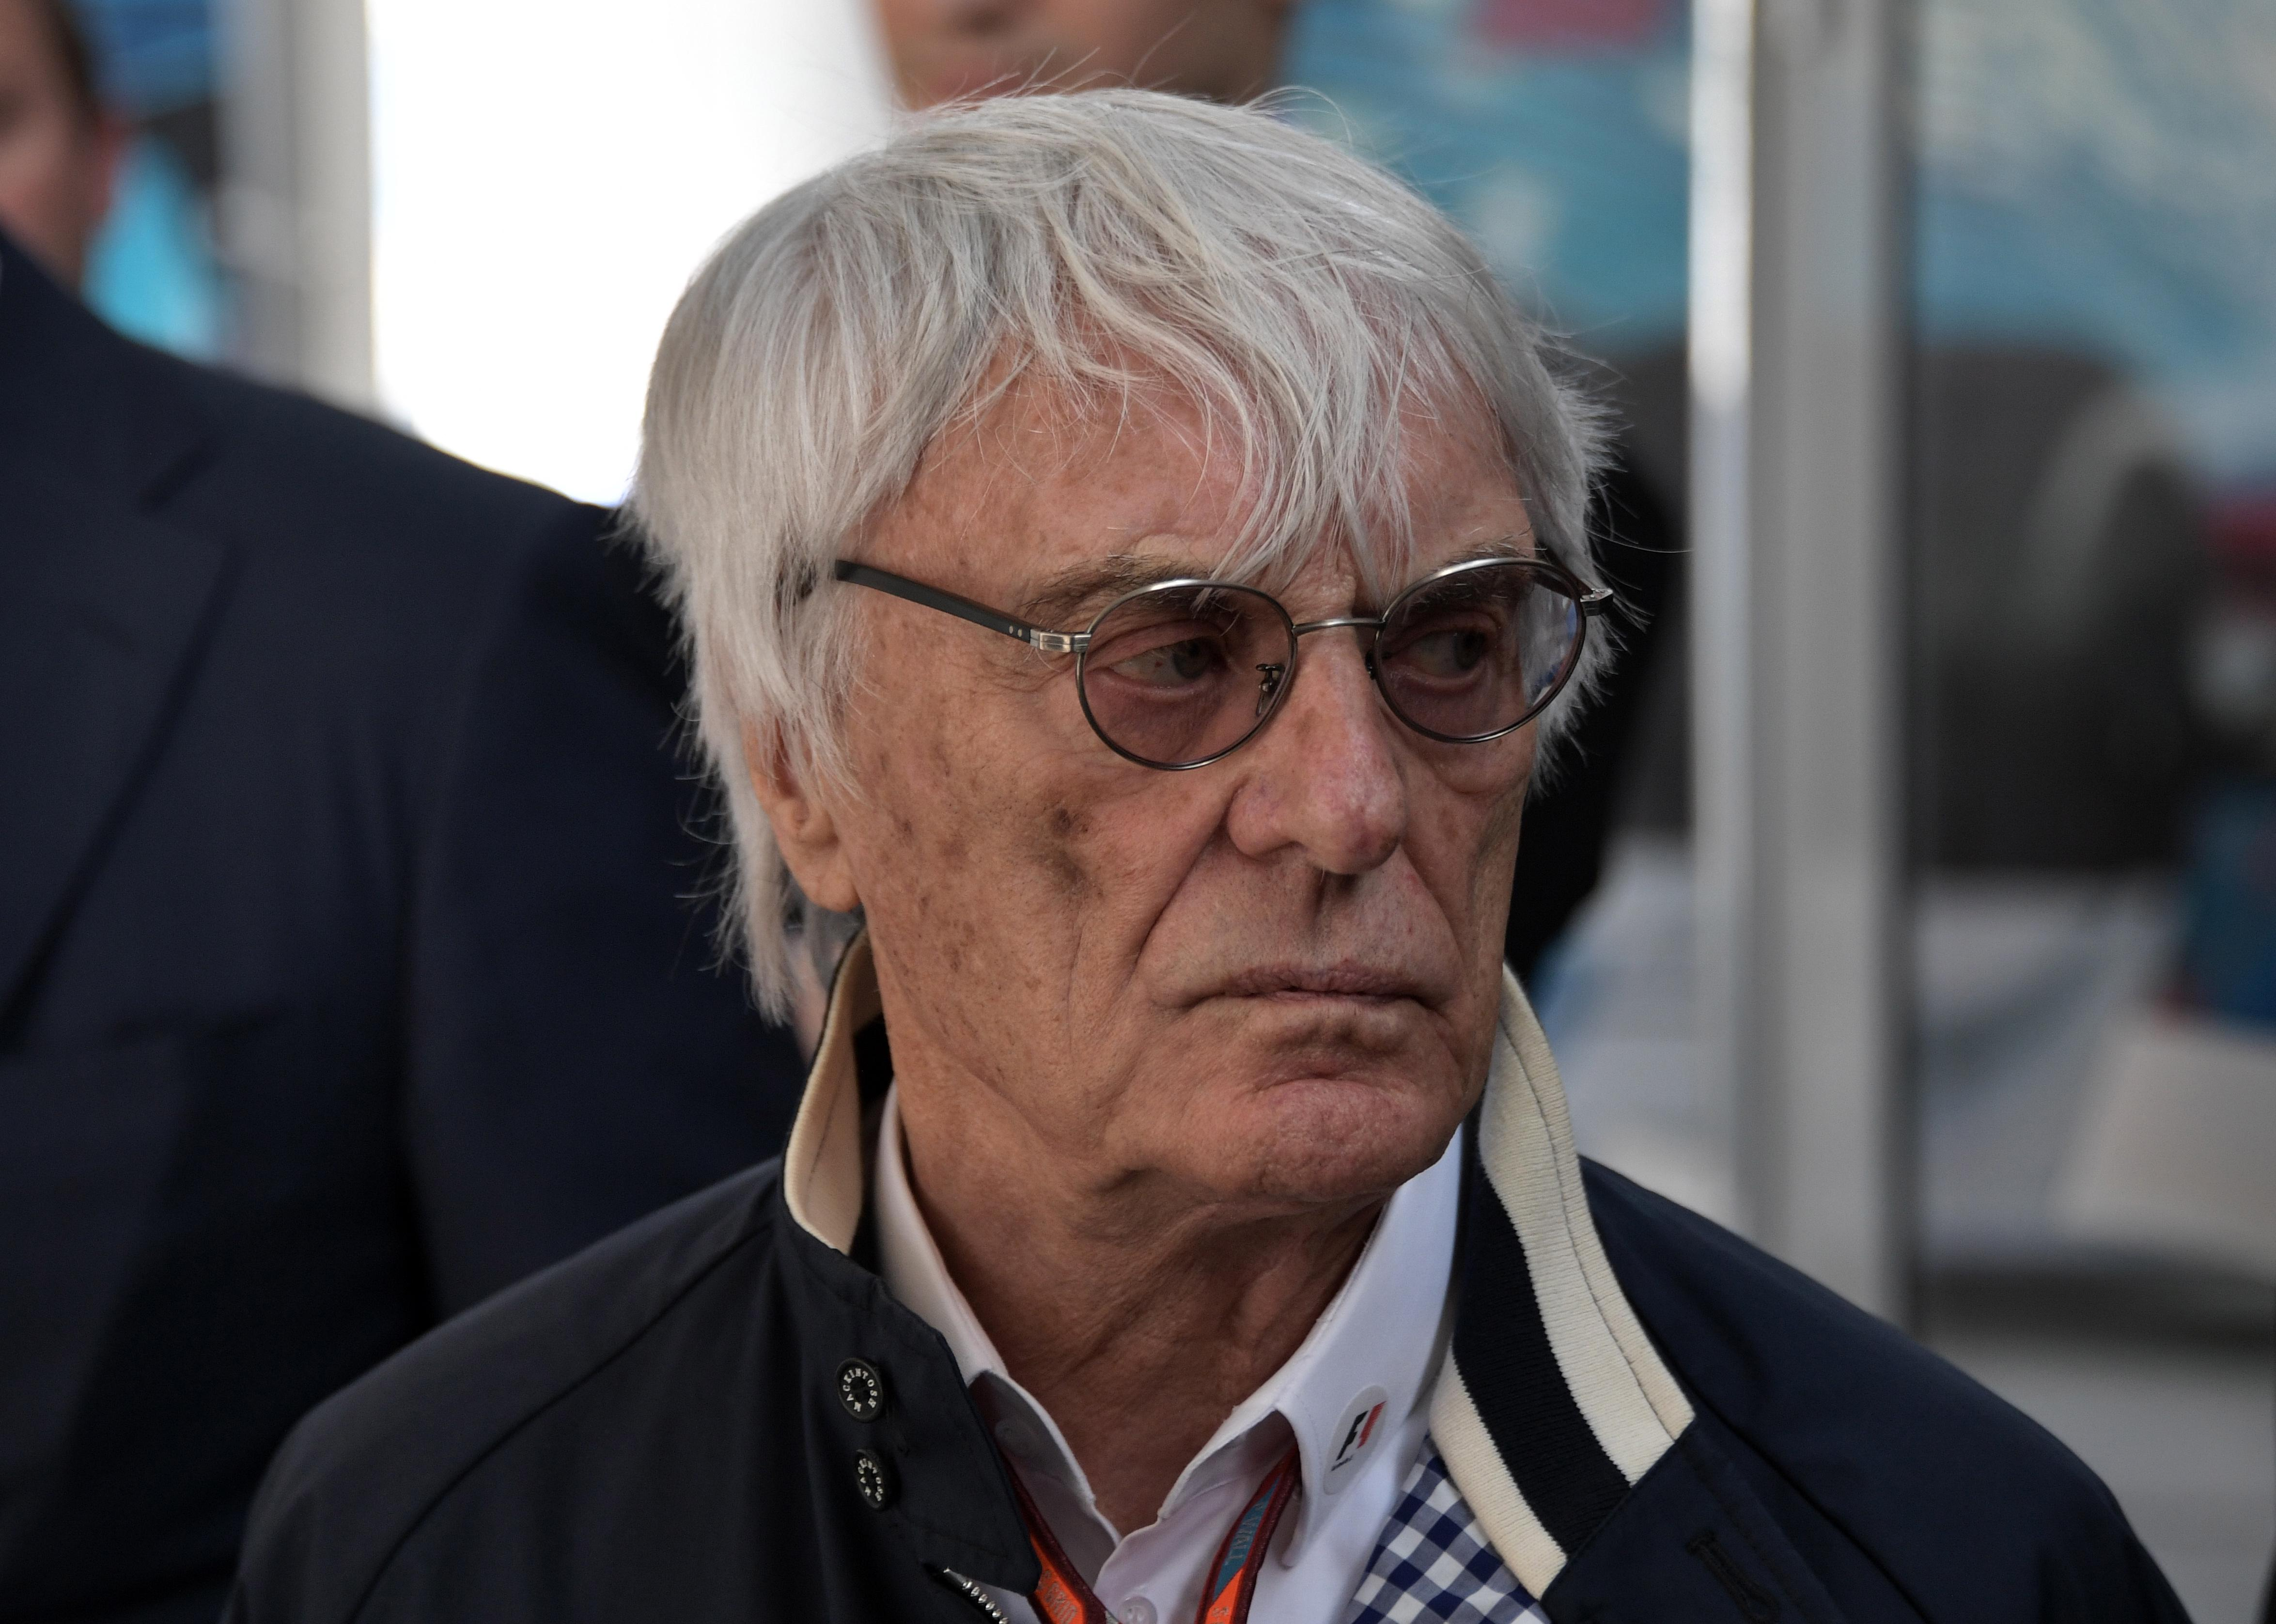 Bernie Ecclestone was in charge of F1 for nearly forty years until his departure last year